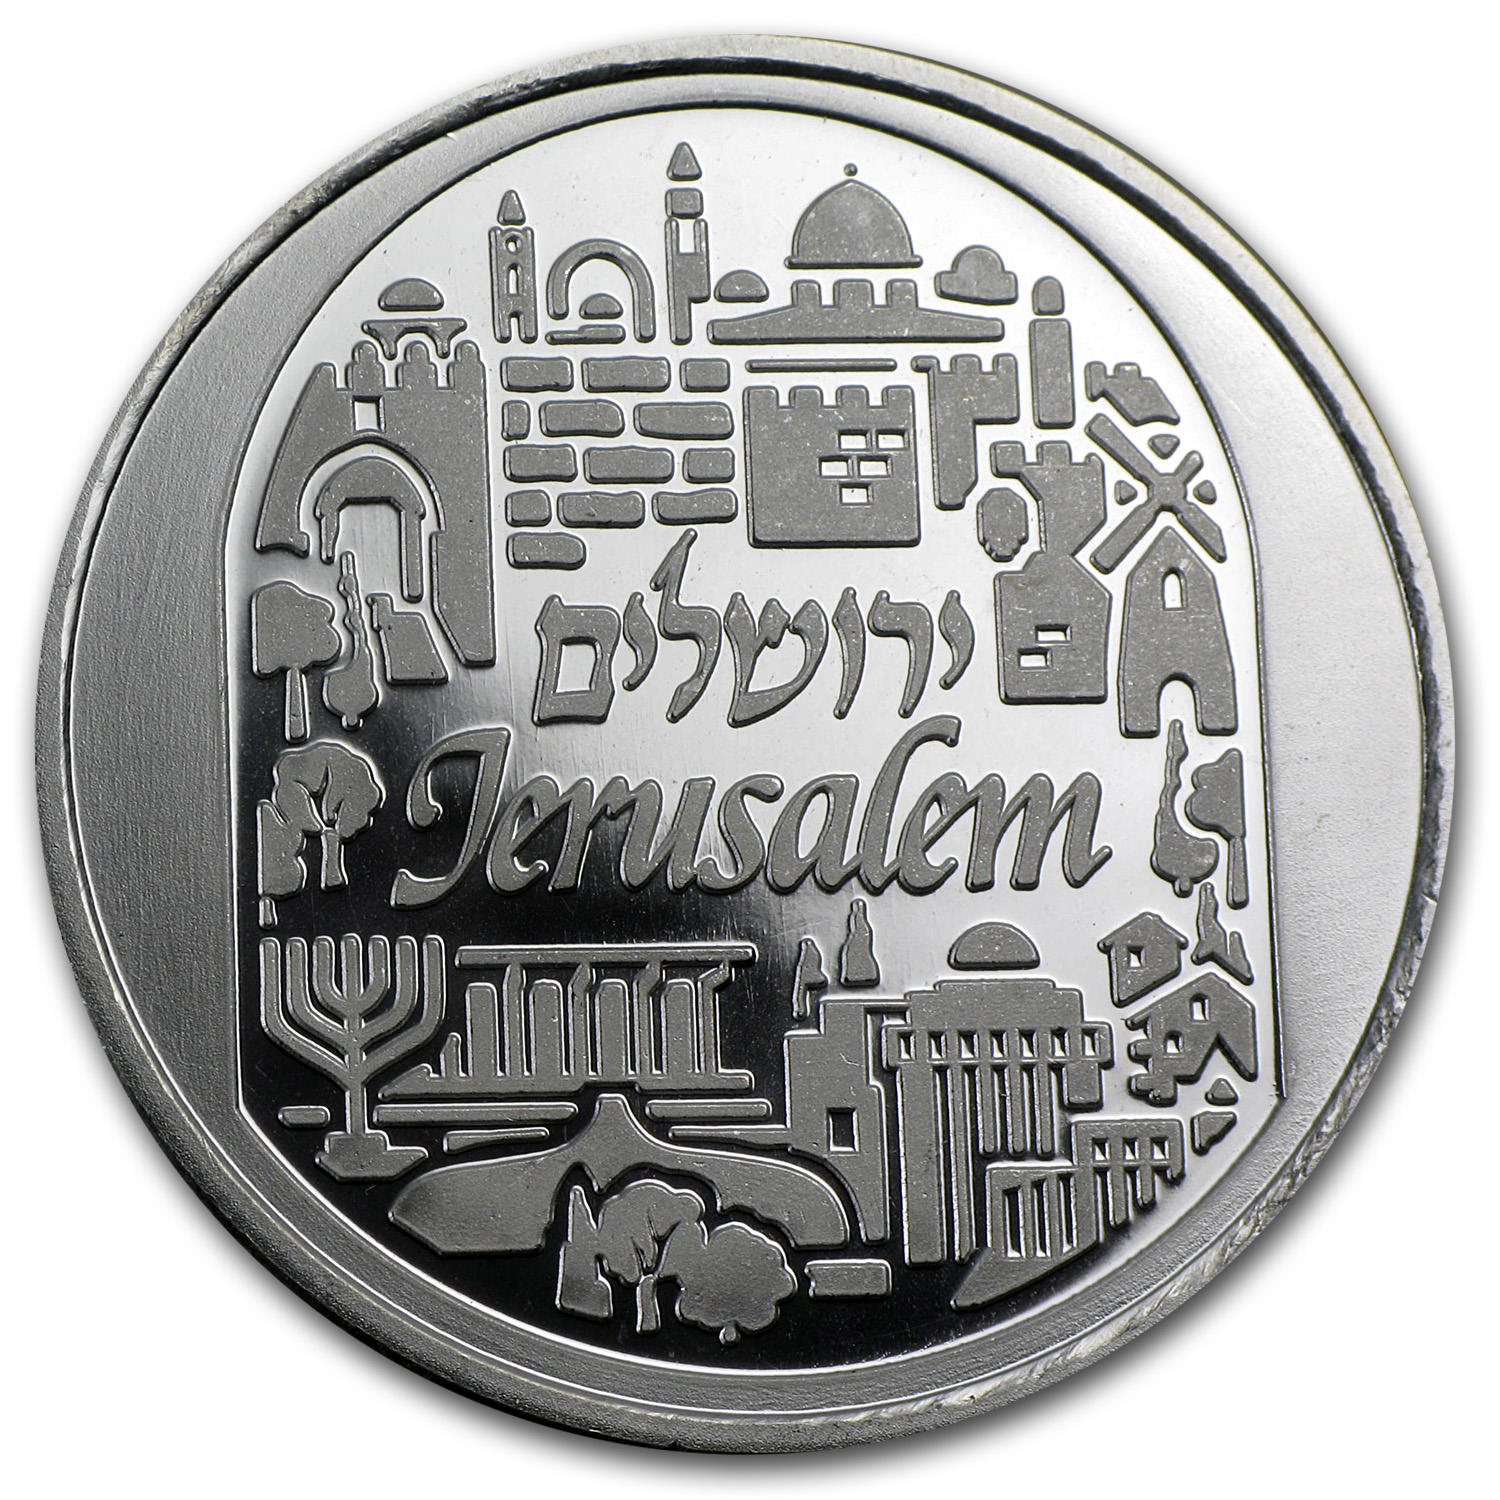 2014 1 oz Silver Rounds - Jerusalem City of Peace